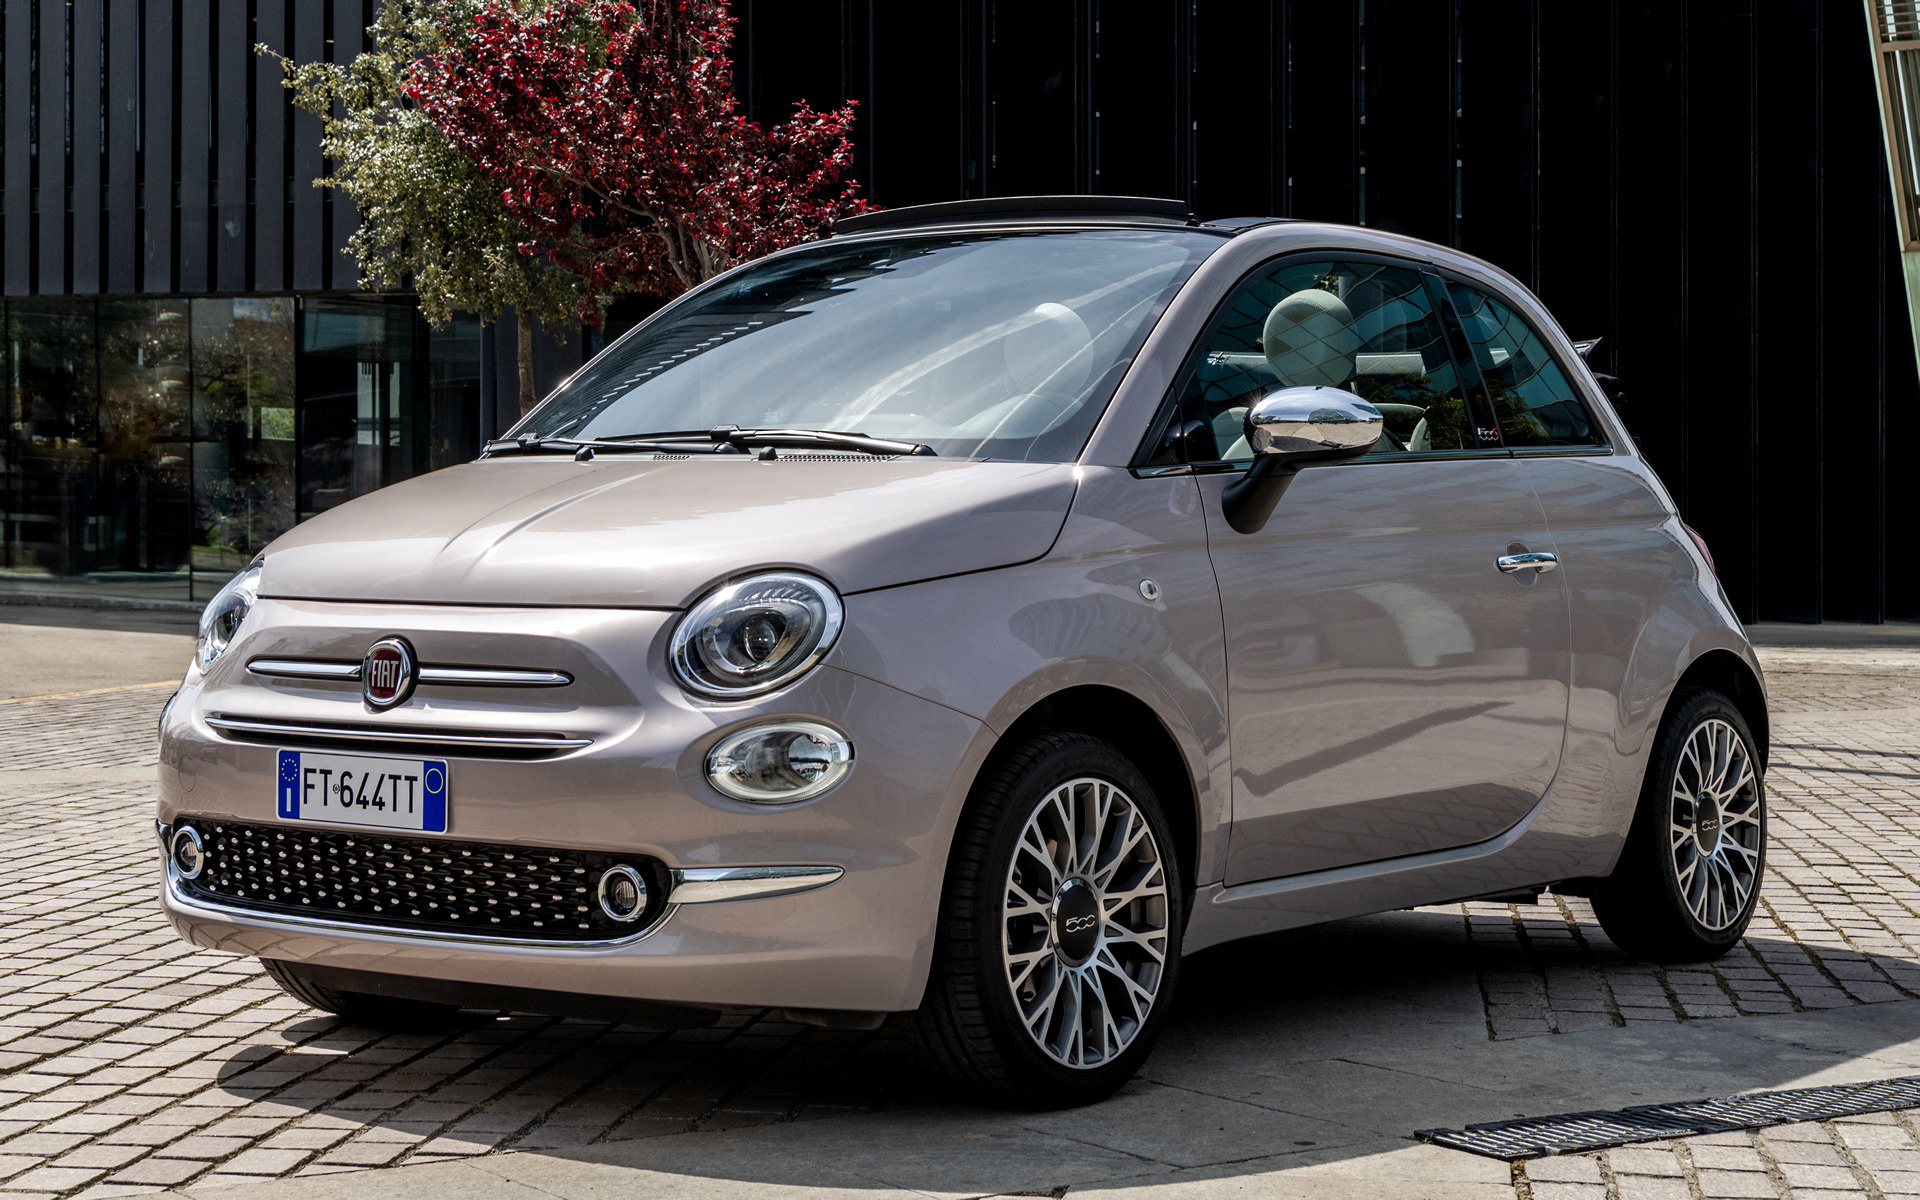 2019 Fiat 500c Star Wallpapers And Hd Images Car Pixel